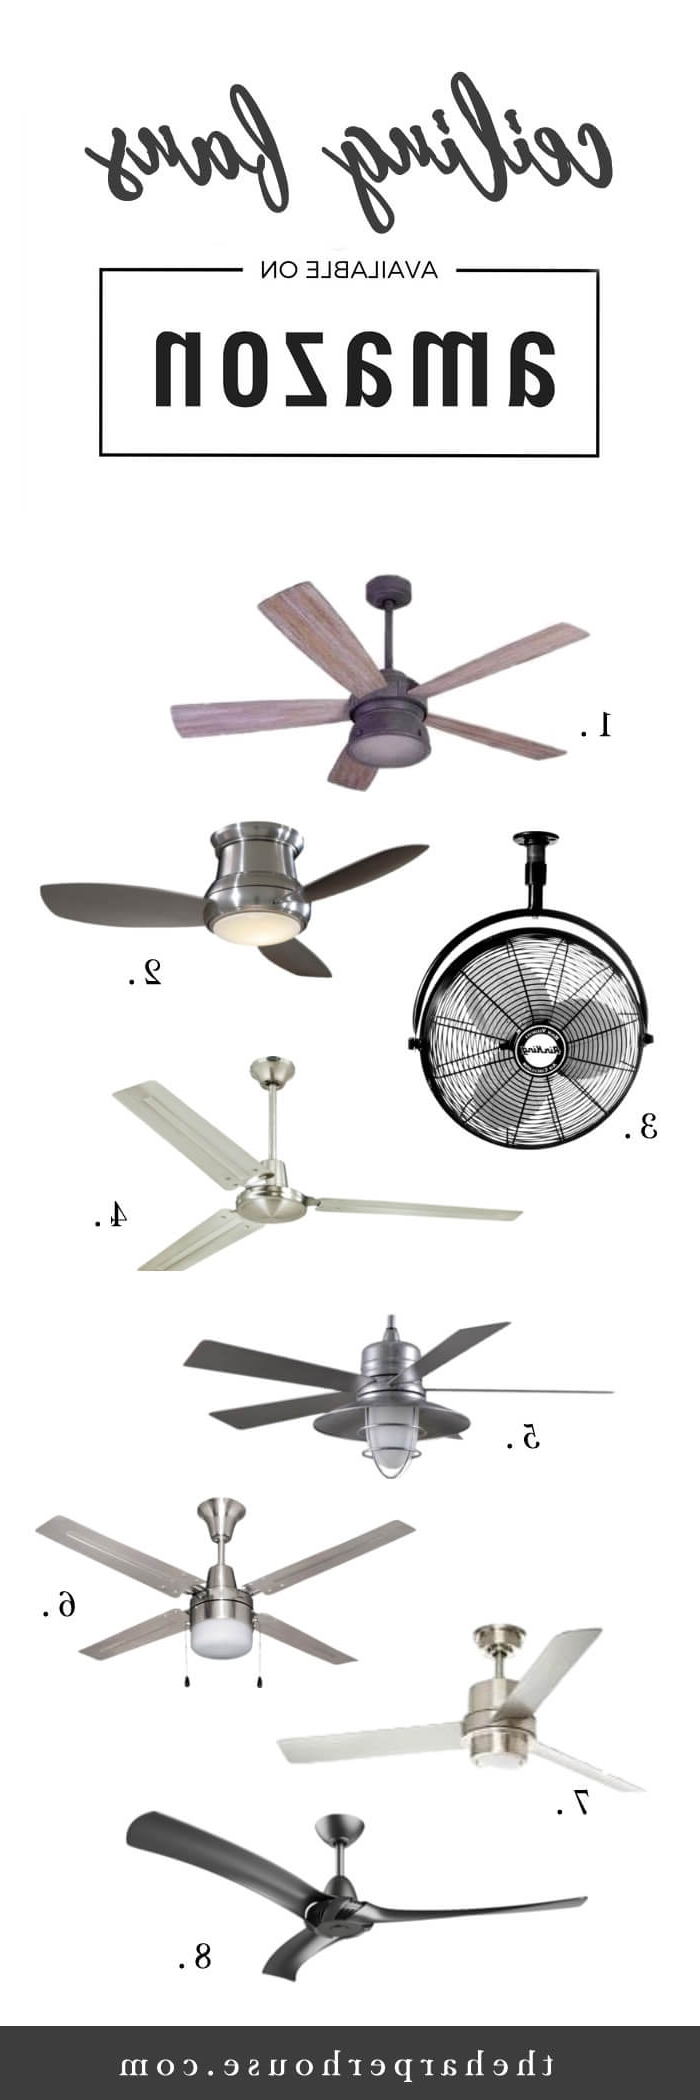 Joanna Gaines Outdoor Ceiling Fans With Regard To Popular Farmhouse Ceiling Fans: Find Them On Amazon! (View 11 of 20)